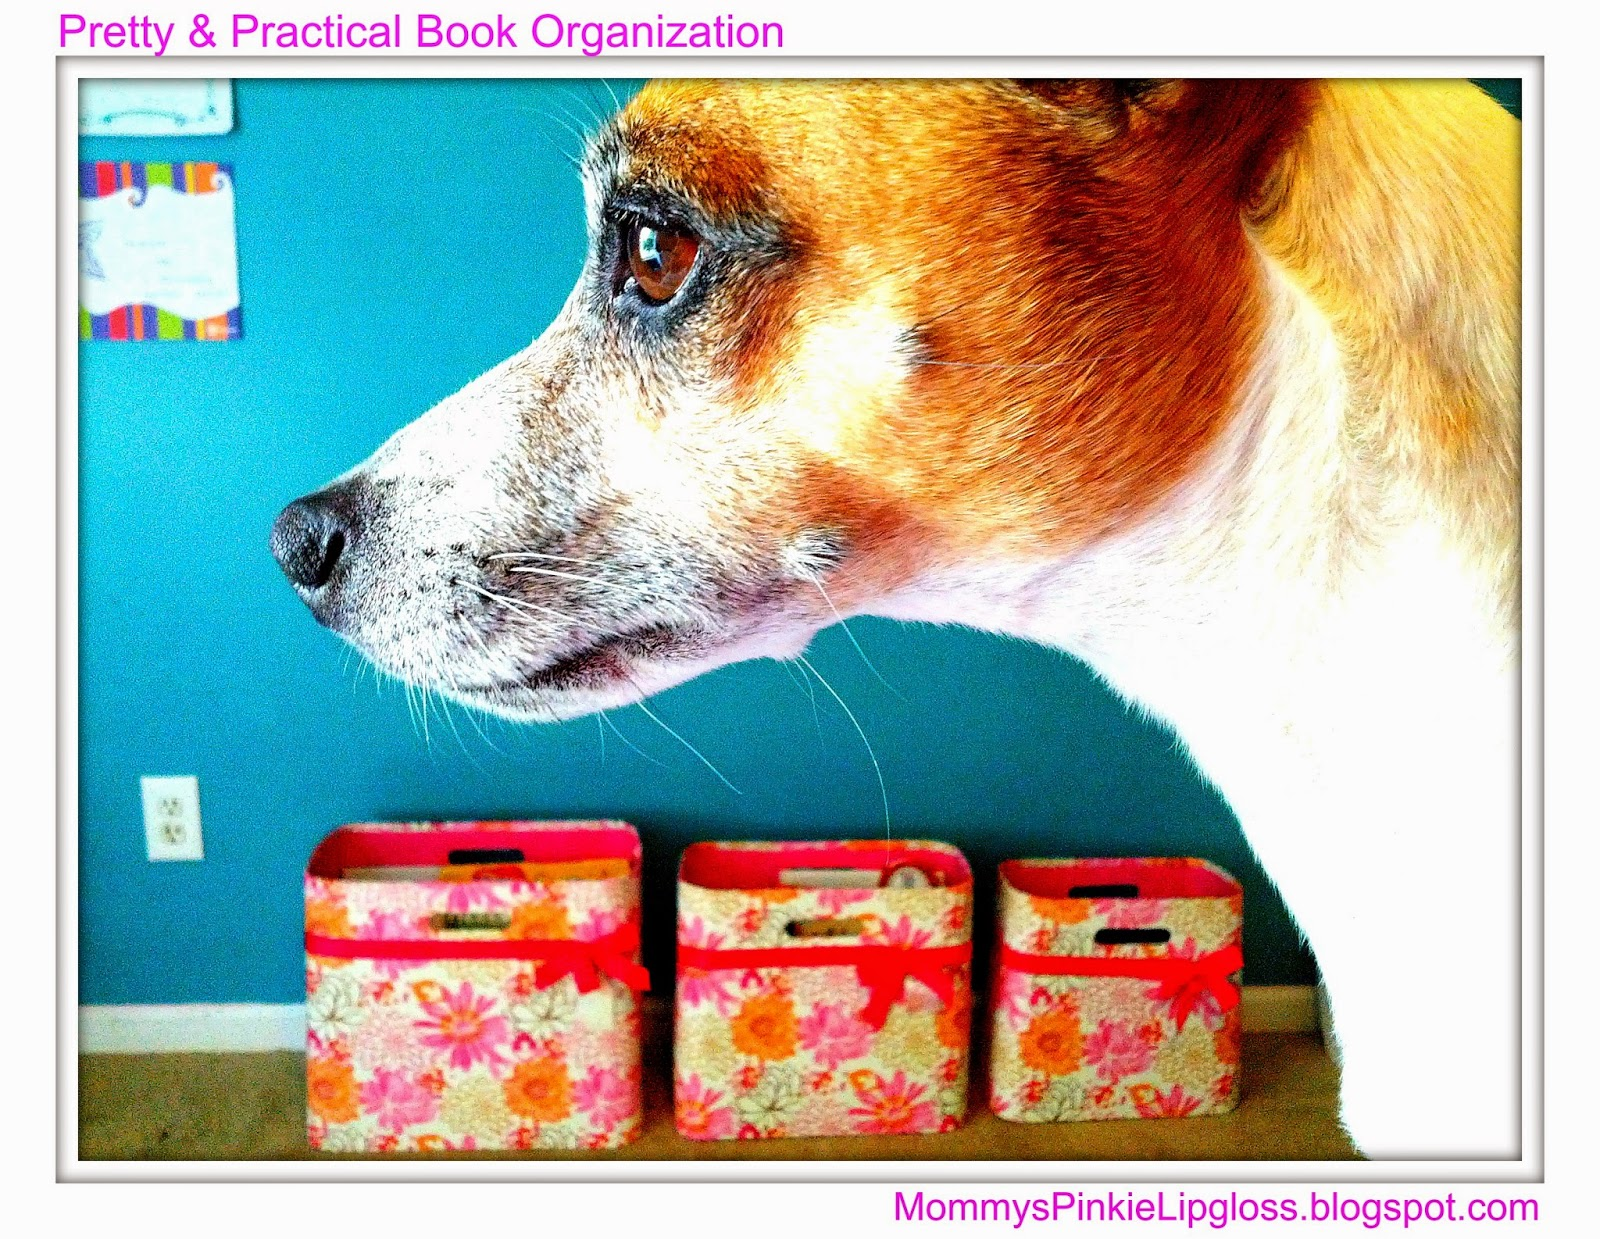 Pretty & Practical Book Organization model Dodger from MommysPinkieLipgloss.blogspot.com